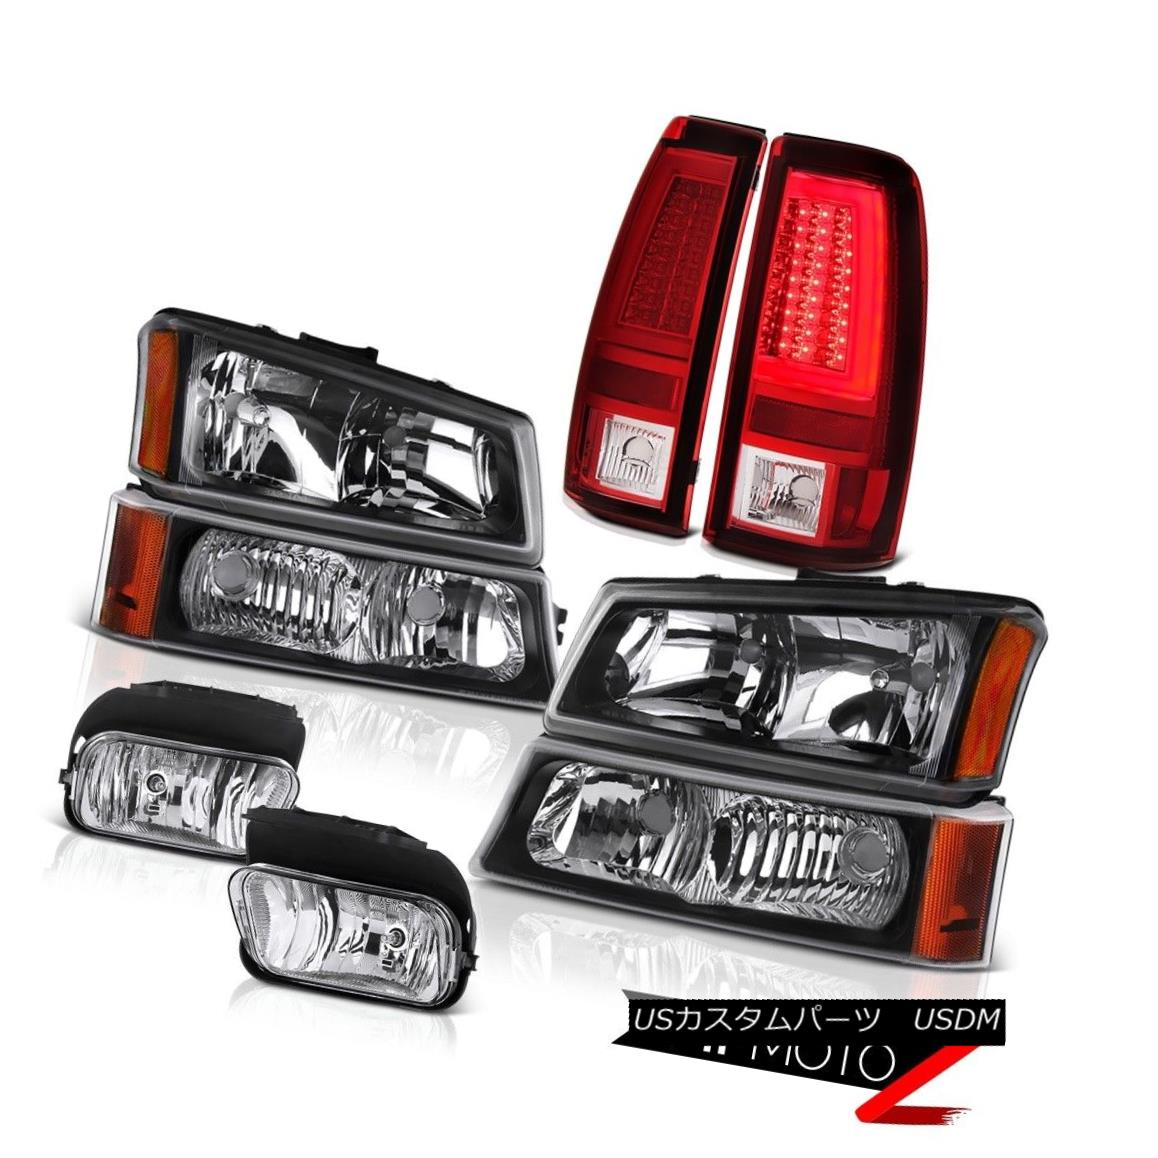 ヘッドライト 03-06 Silverado Tail Lights Black Headlamps Chrome Fog